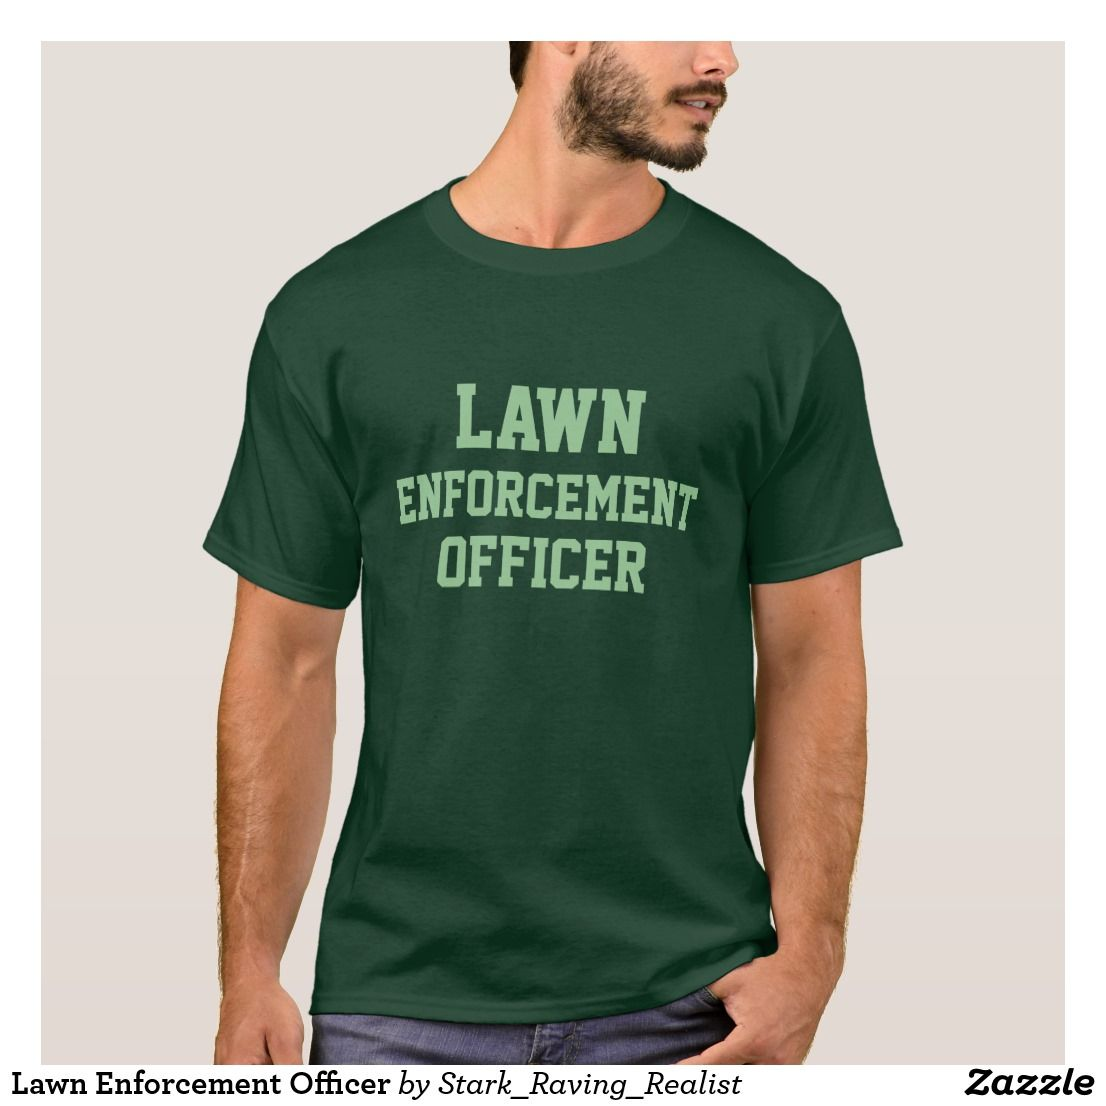 dee986ba Lawn Enforcement Officer T-Shirt #fathersday #father #fathers #day #2018  #giftideas #giftsfordad #giftfordad #daddy #dad #grandpa #grandfather #papa  ...